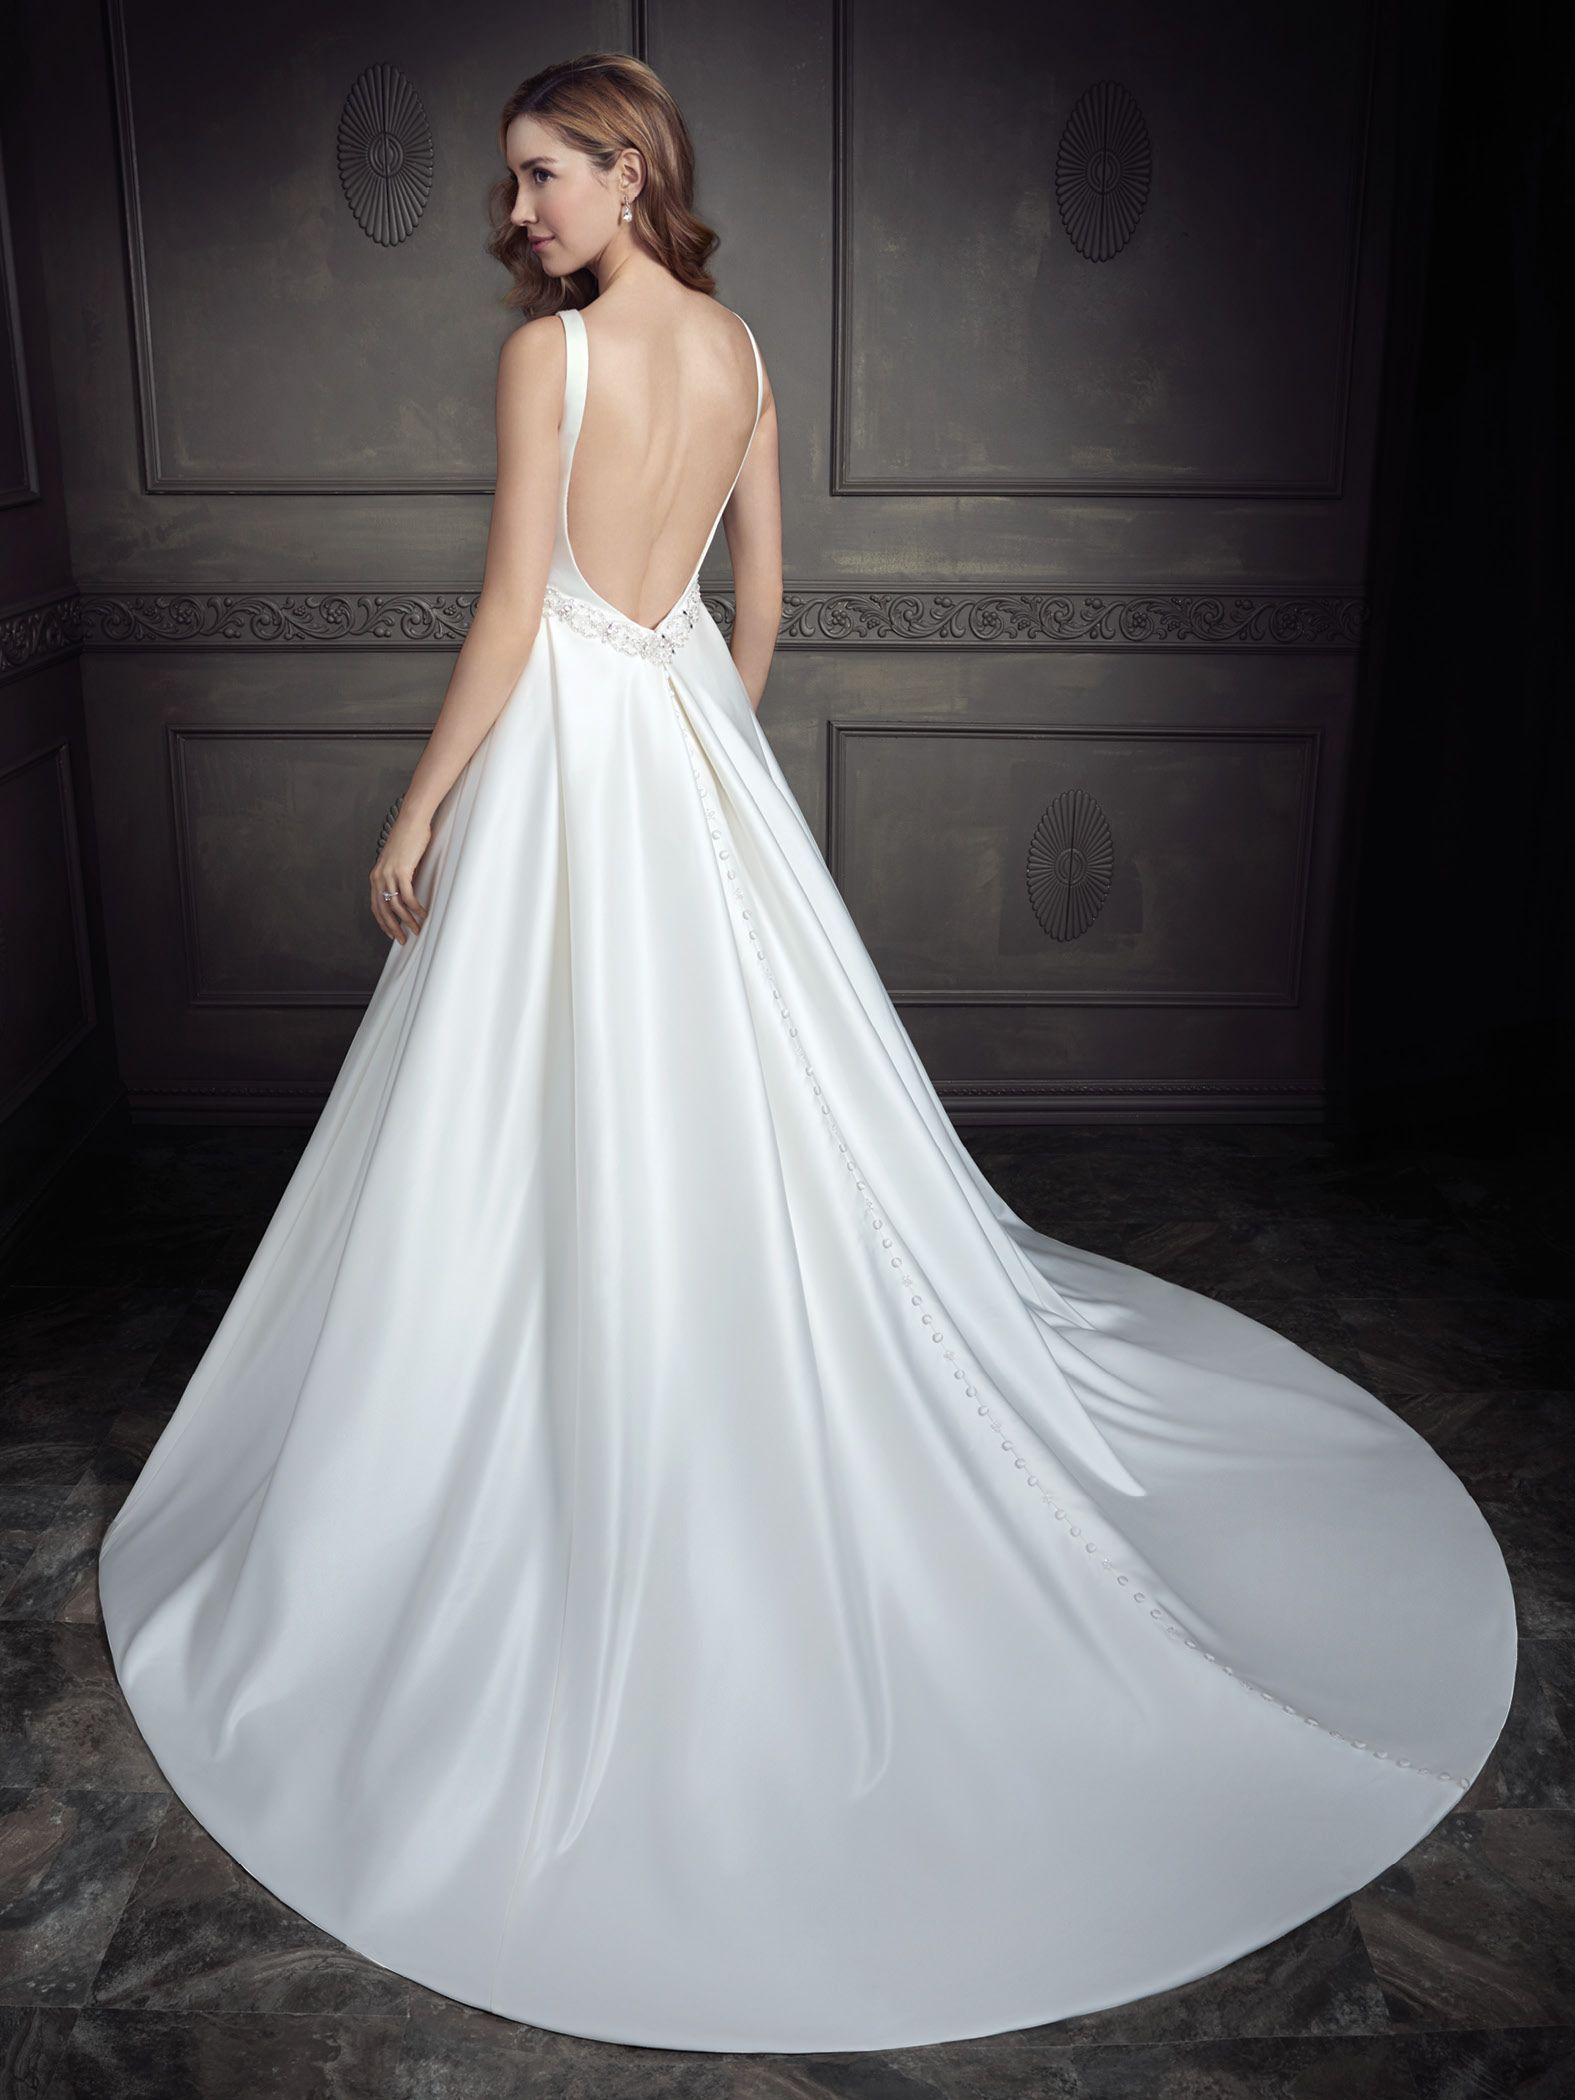 Elite wedding dresses  Ella Rosa Style BE weddingdress bridal  Weddings  Pinterest